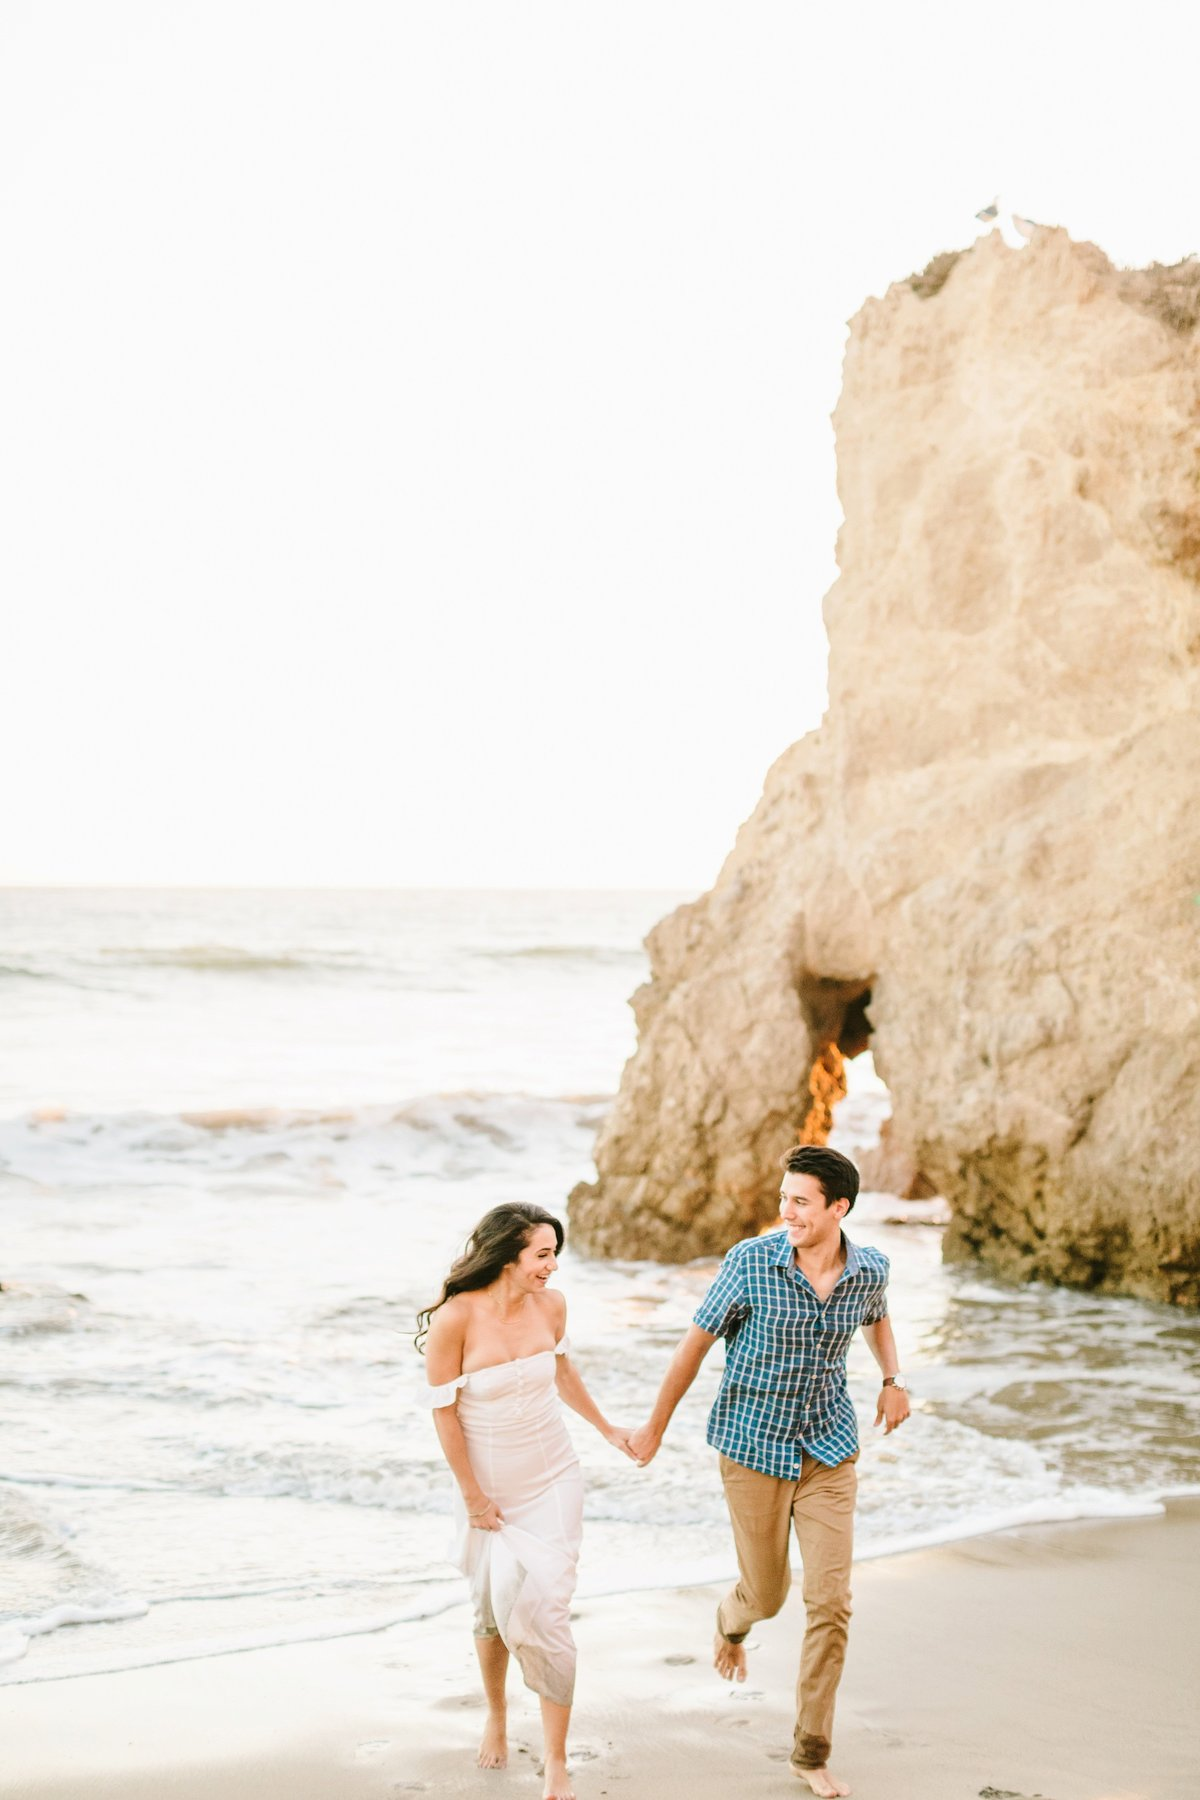 Best California Engagement Photographer_Jodee Debes Photography_040